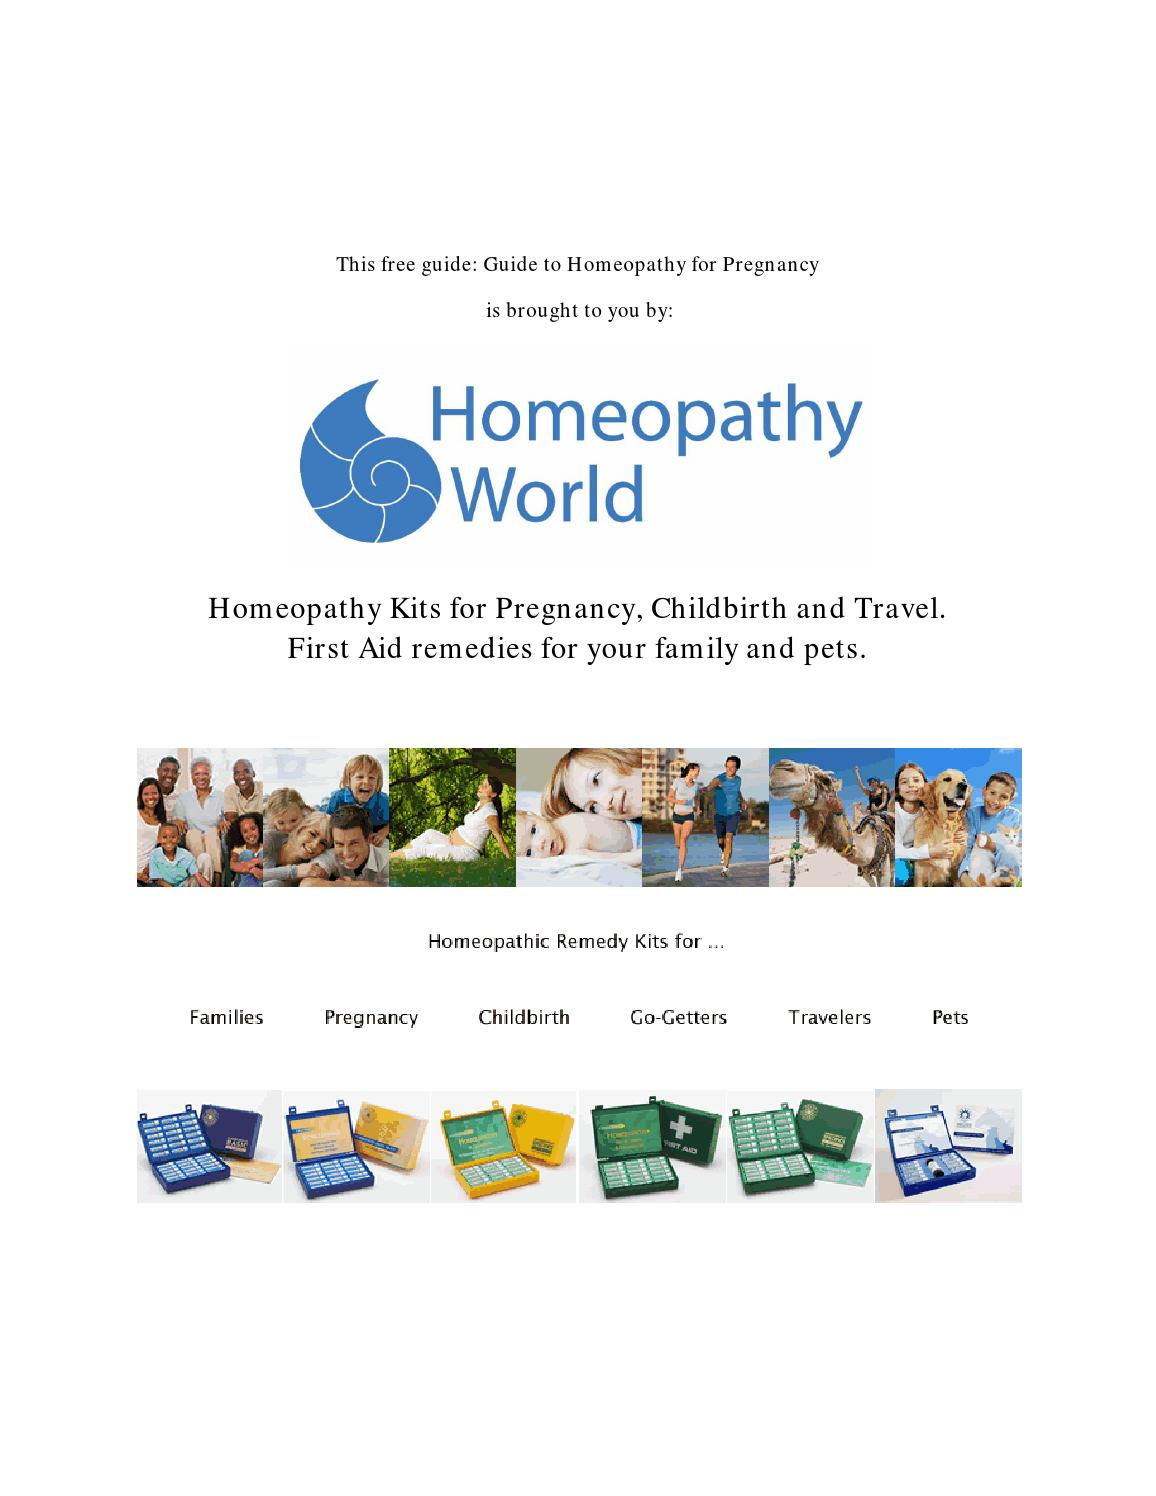 Your guide to homeopathy for pregnancy by mary aspinwall issuu fandeluxe